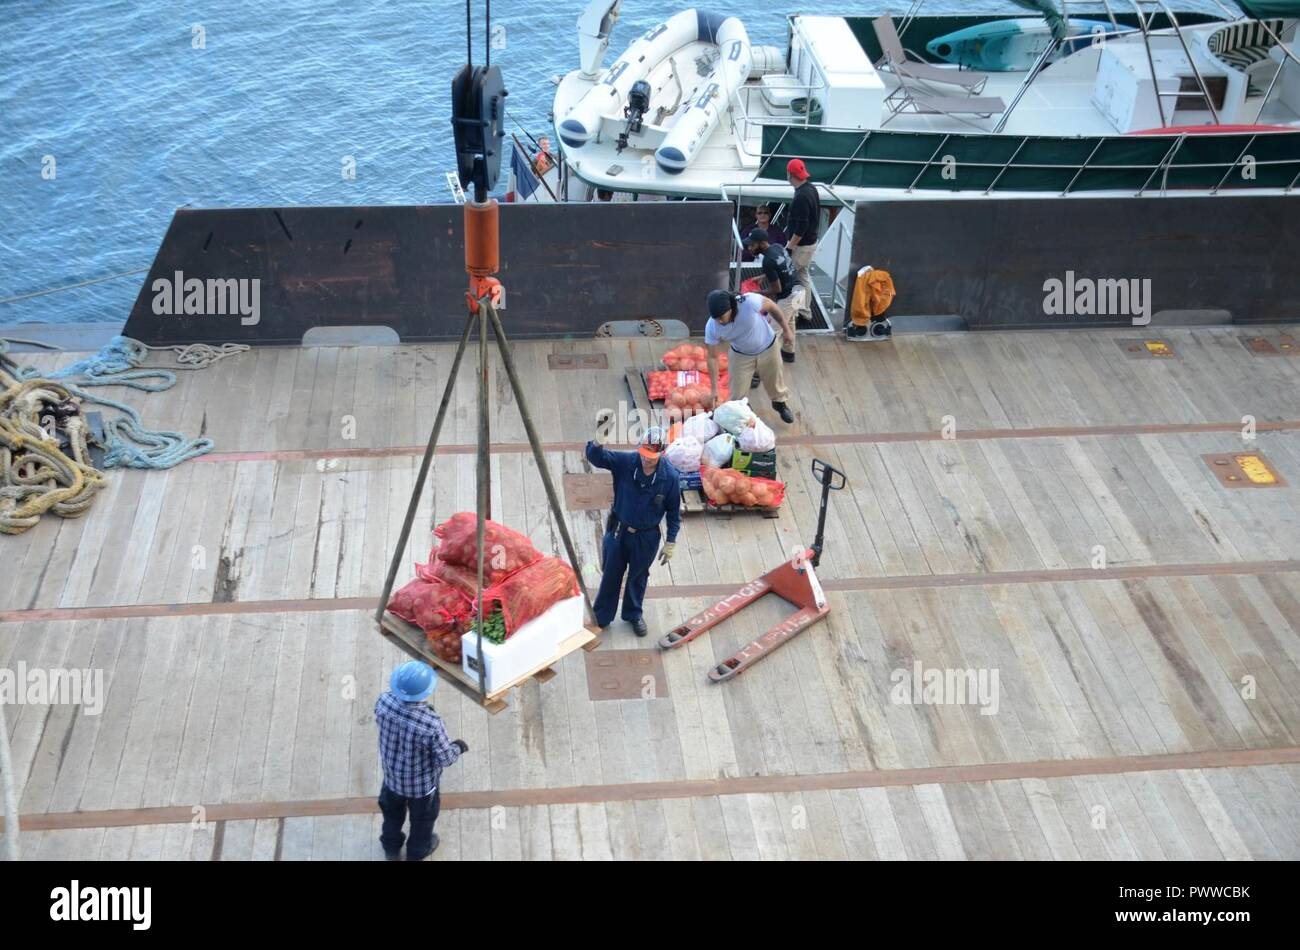 NOUMEA, New Caledonia (July 06, 2017) Civilian Mariners onboard USNS Sacagawea (T-AKE 2), onload stores and supplies off shore Noumea, New Caledonia in support of Koa Moana 17, July 6. Koa Moana 17 is designed to improve theater security, and conduct law enforcement and infantry training in the Pacific region in order to enhance interoperability with partner nations. ( Stock Photo